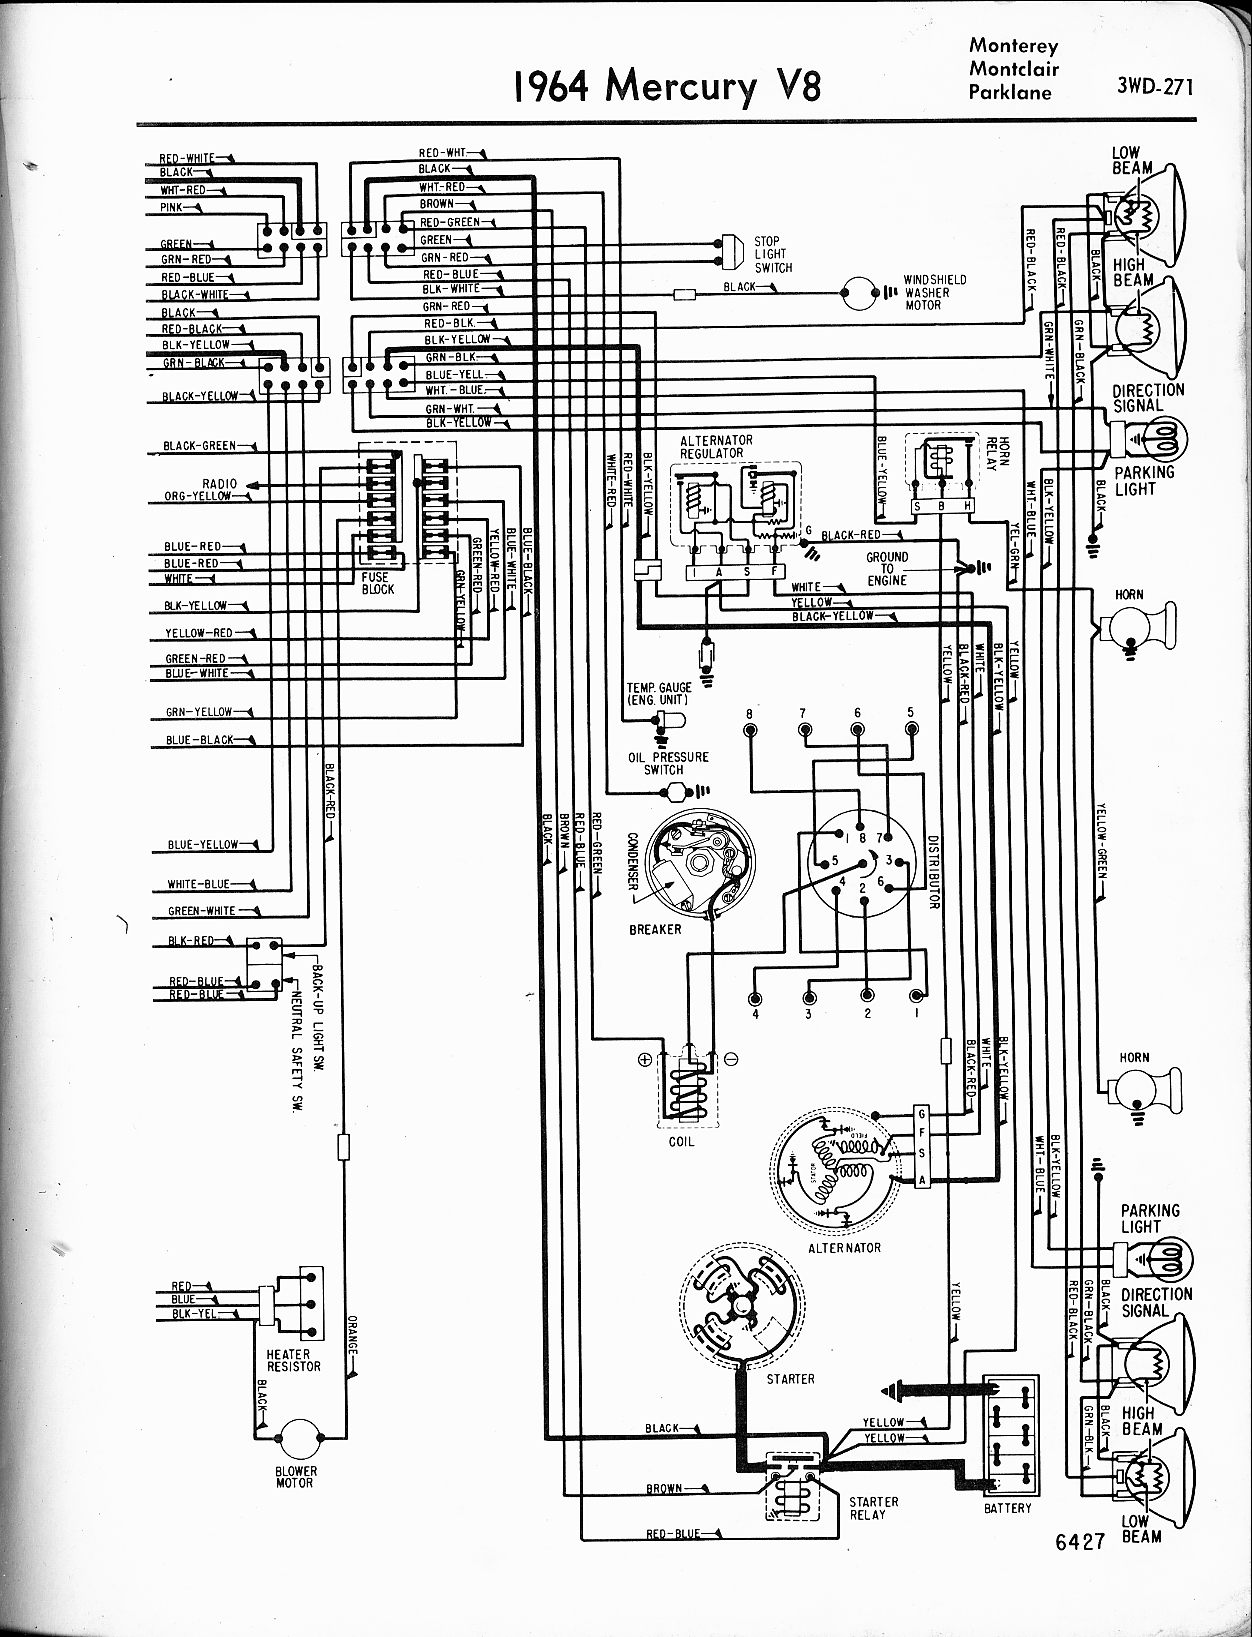 wiring diagram wiring diagram for impala the wiring diagram mercury wiring diagrams the old car manual project 1964 v8 monterey montclair parklane right page